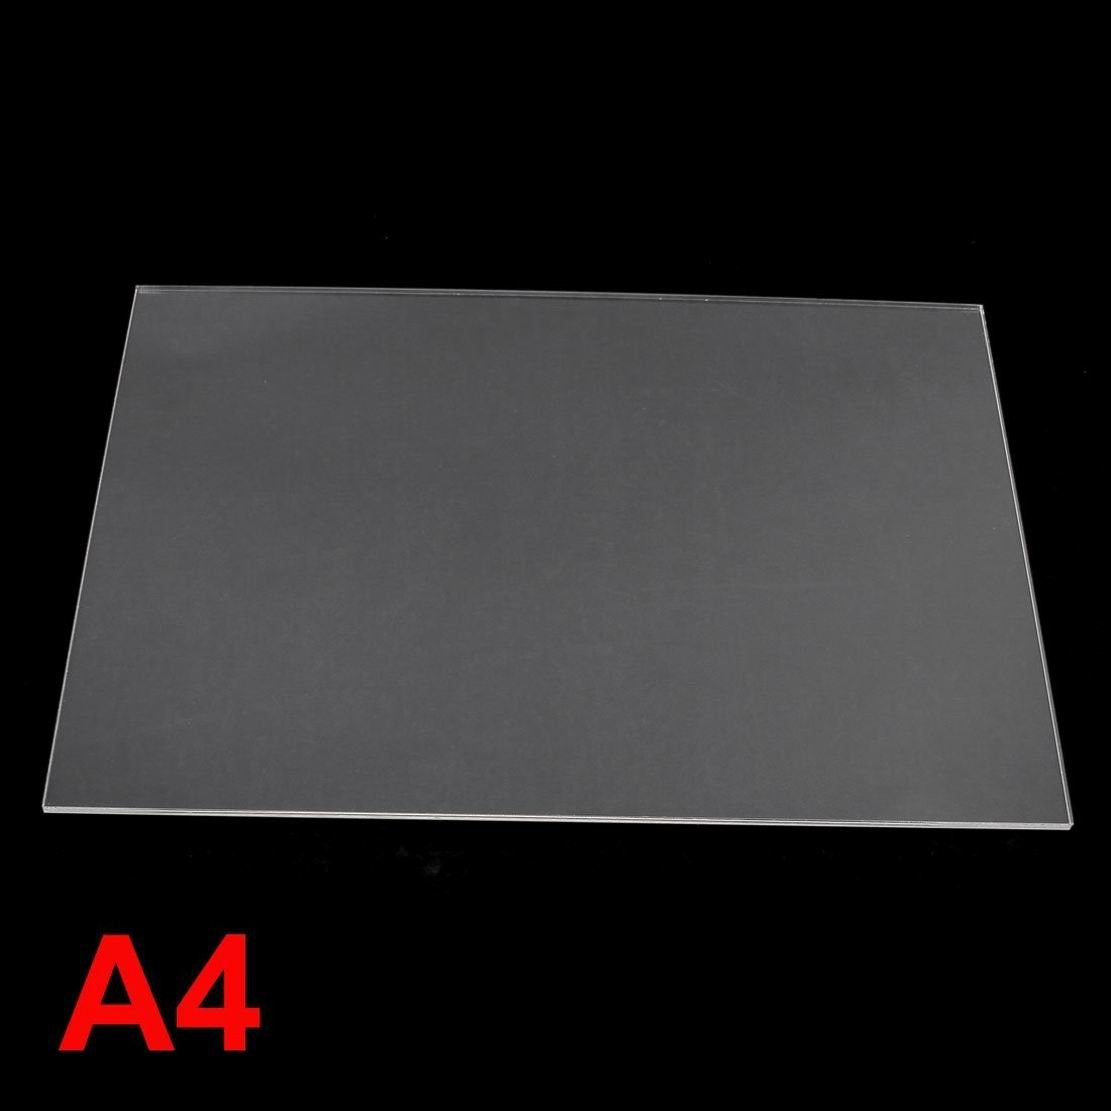 Clear Acrylic Plastic Sheets Perspex Panels A4 3mm Small Clear Windows Pack of 2